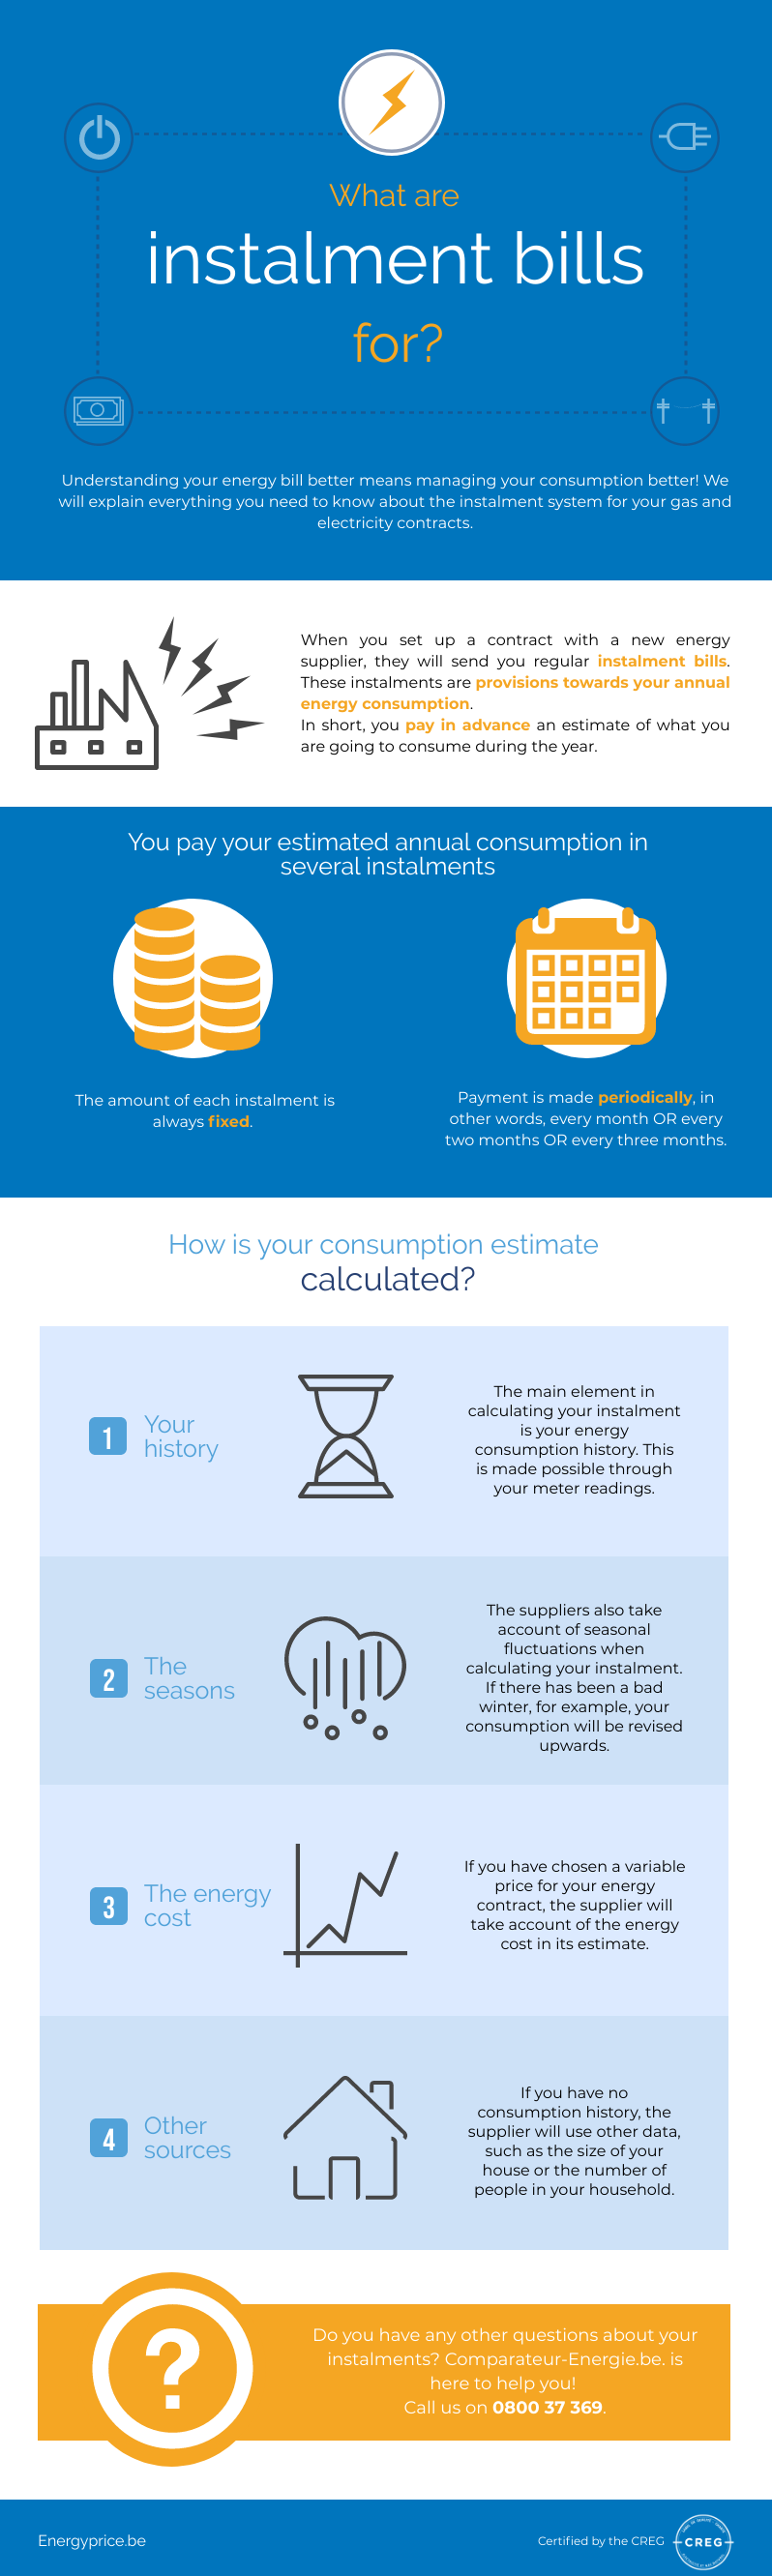 An infographic about instalments